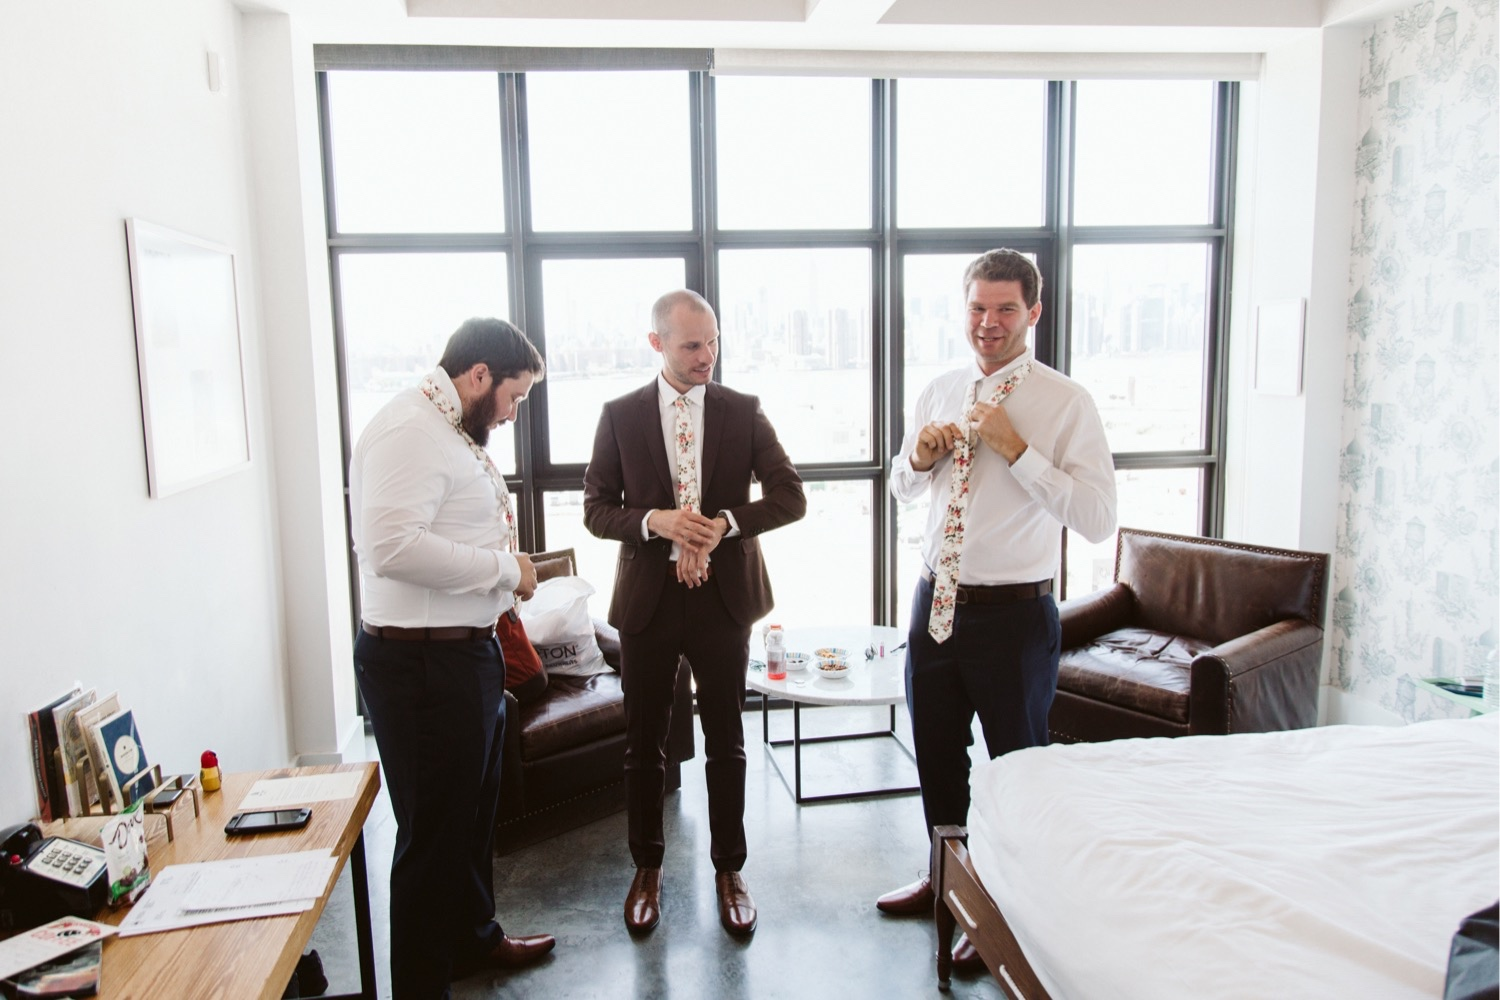 the groom and groomsmen in the wythe hotel getting ready